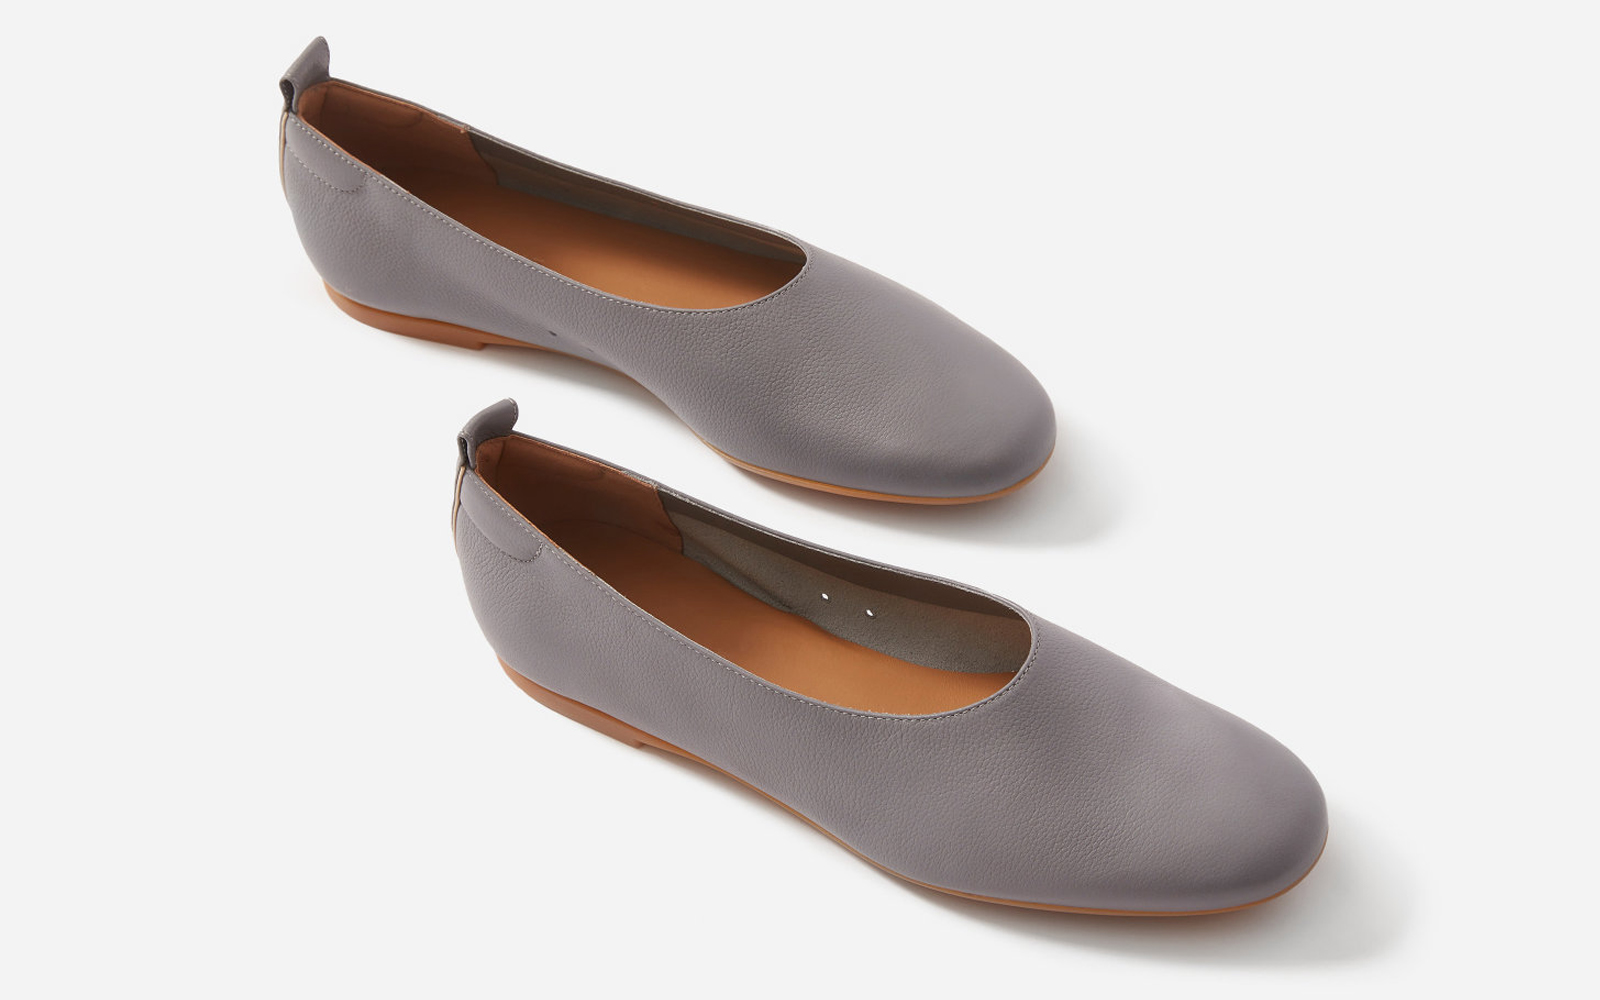 ebd685743f9 Everlane's Best-selling Comfy Flats Now Come in 3 Gorgeous New ...